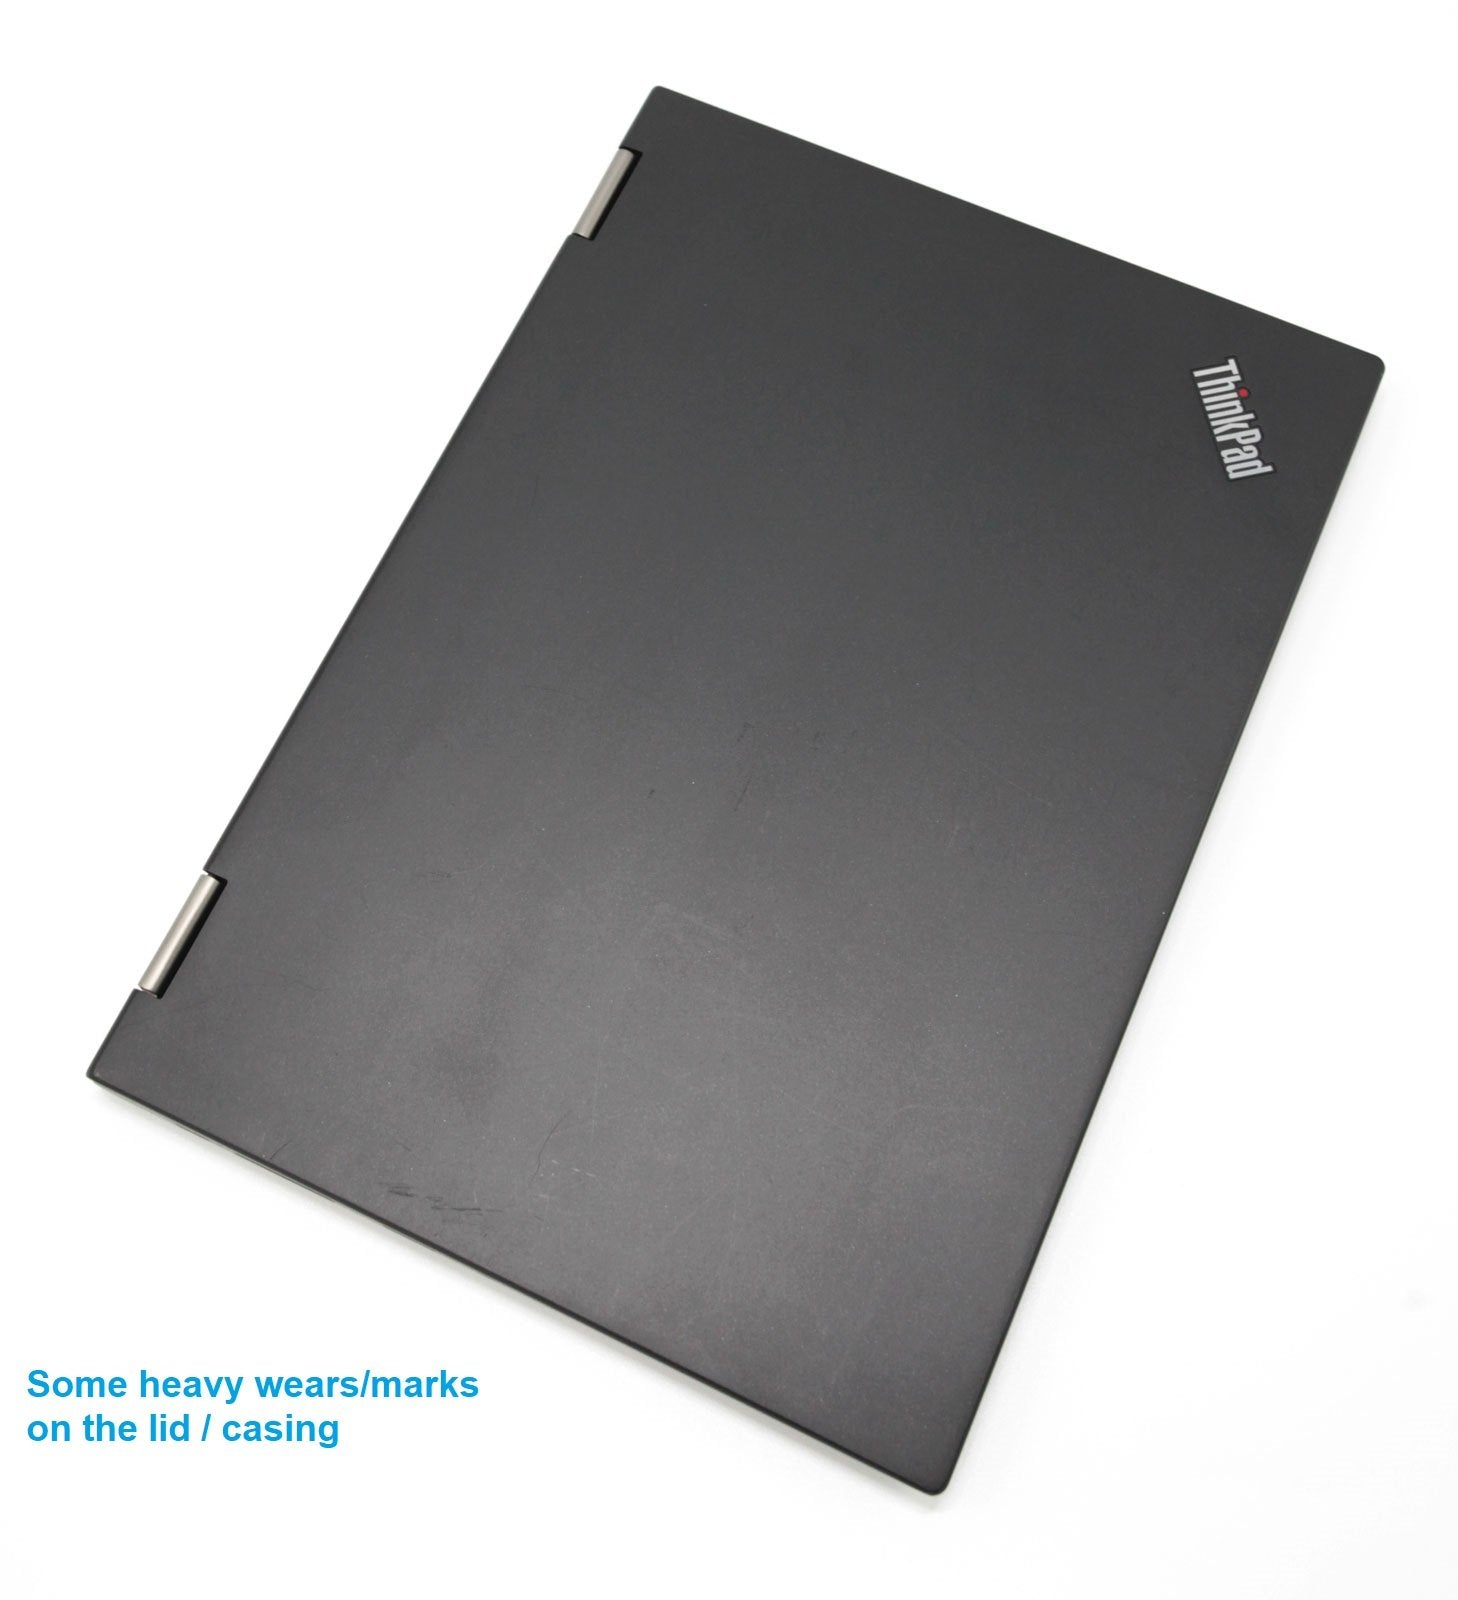 Lenovo Thinkpad X390 Yoga Laptop: 8th Gen i5, 256GB, 16GB RAM Warranty - CruiseTech